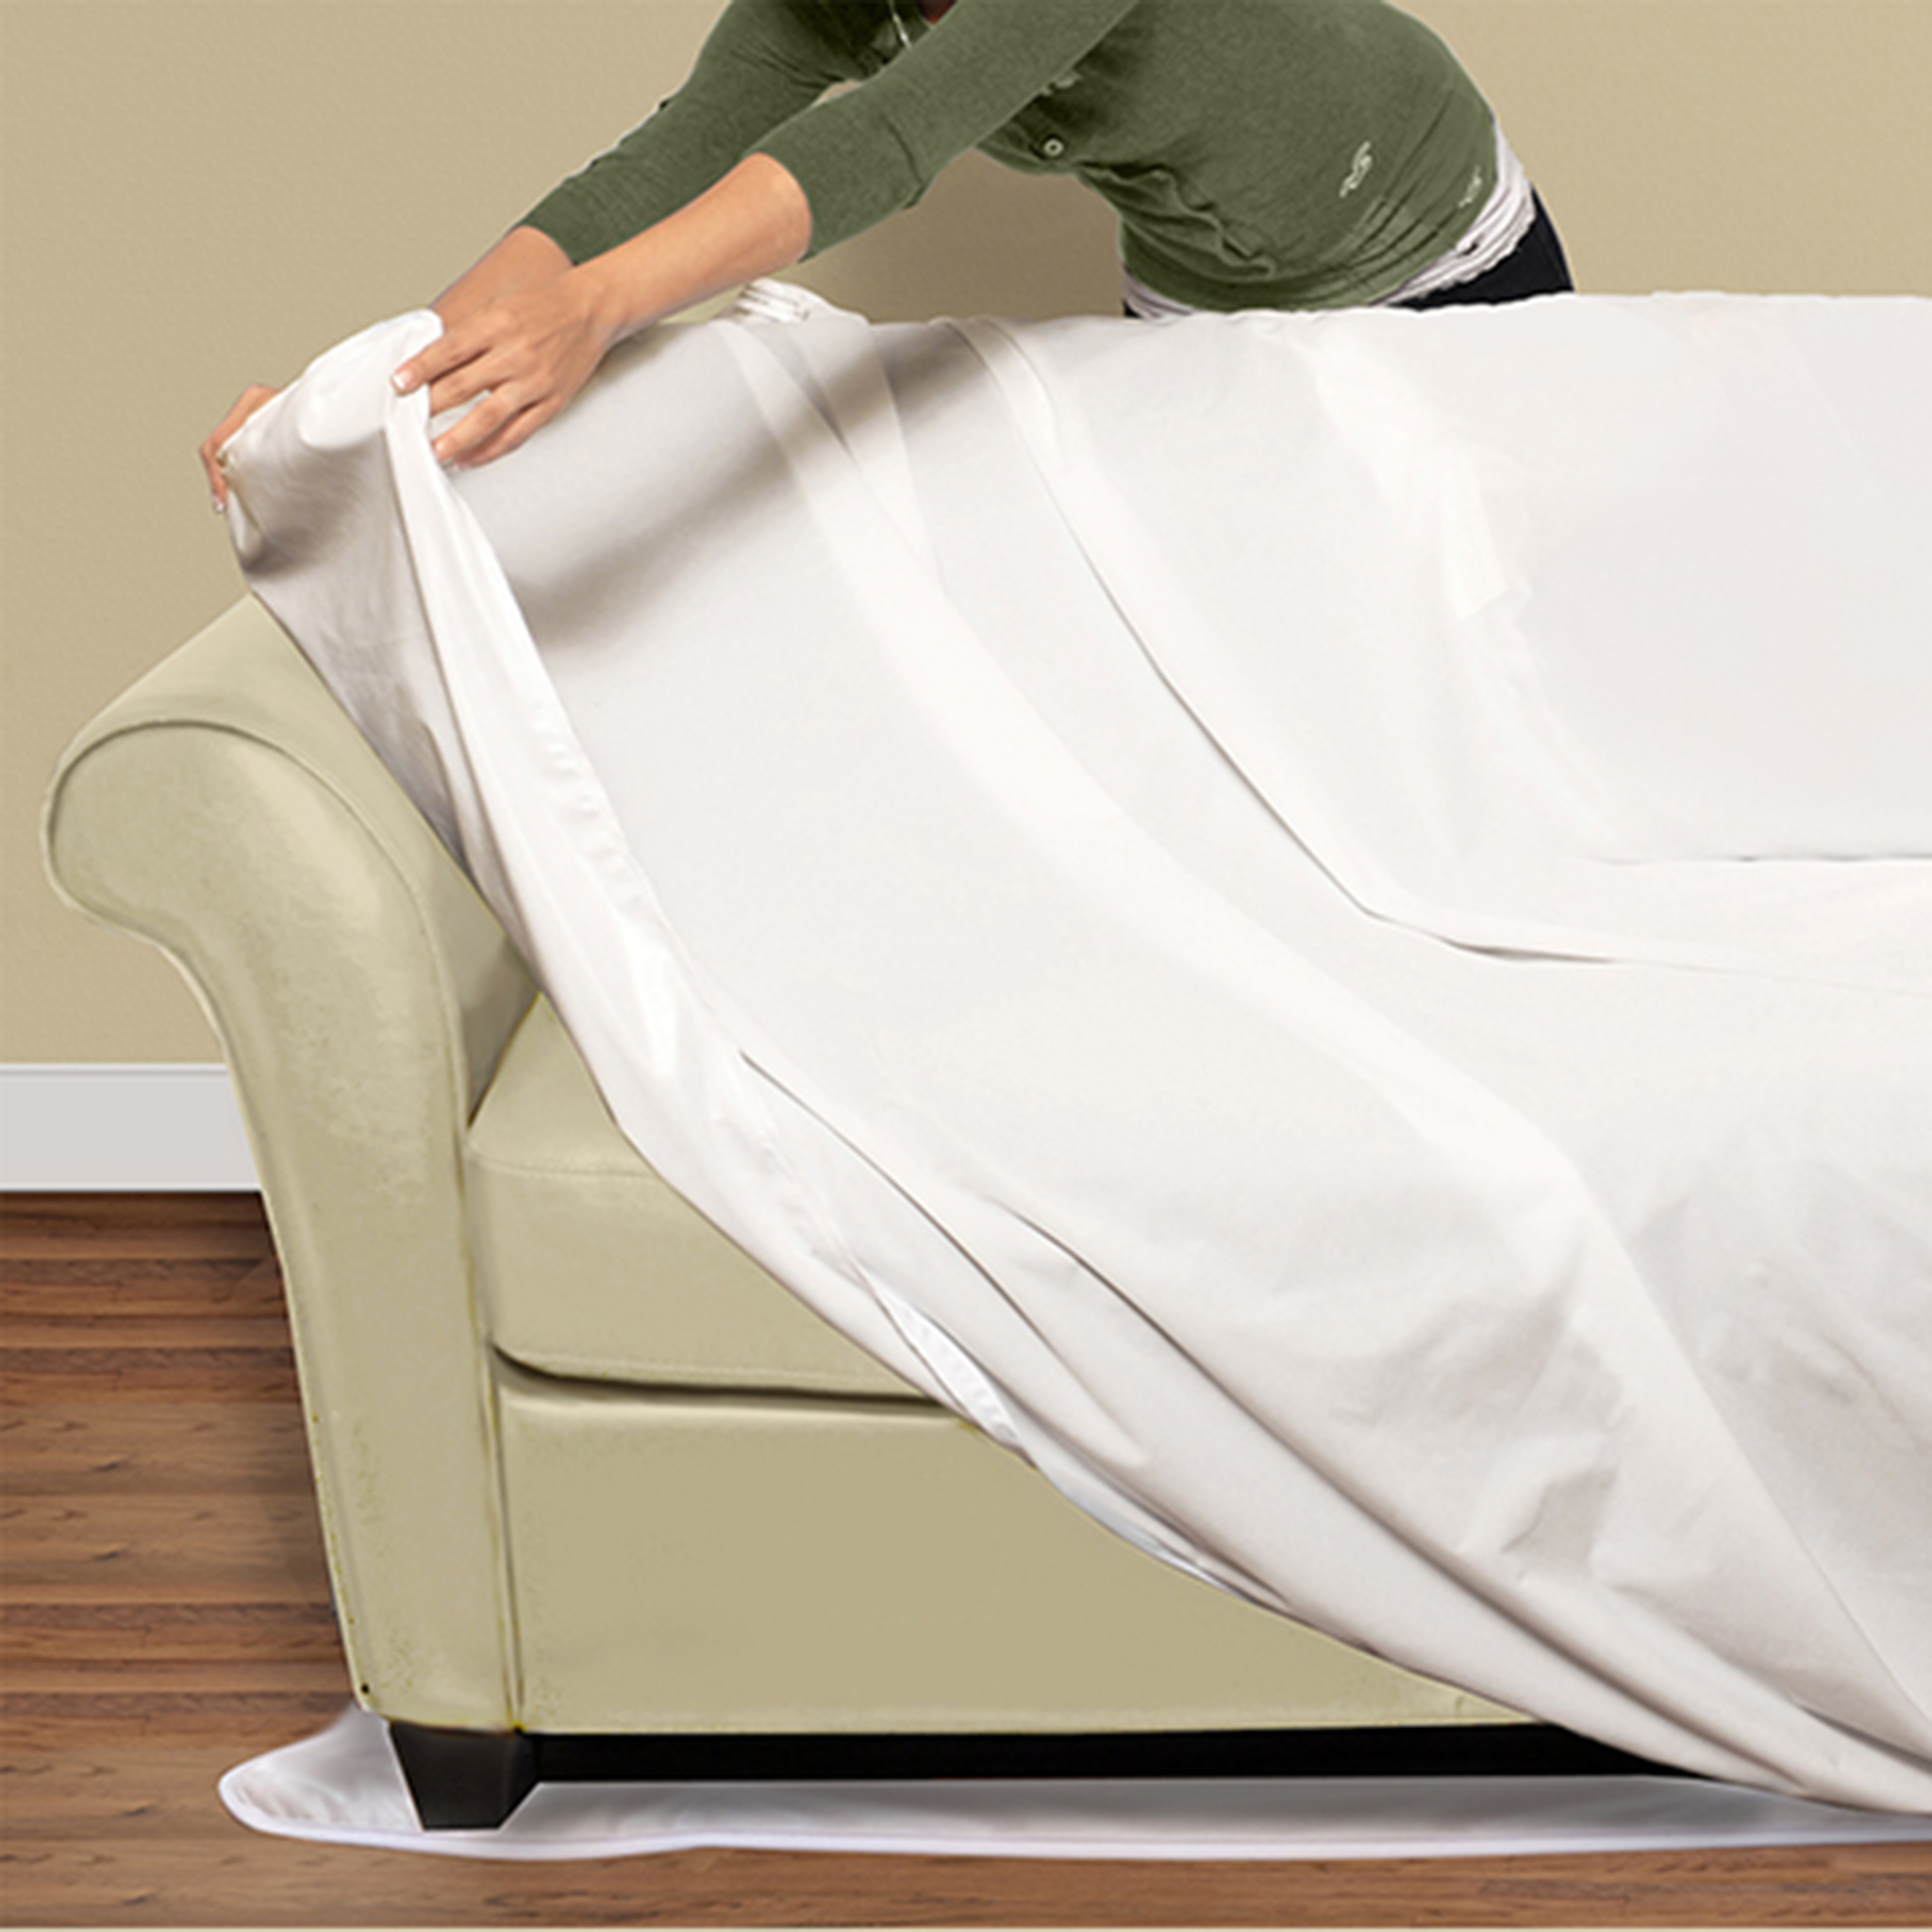 Bed Bug Sofa Cover New Bed Bug Killing Products Nighch Encats Mattress Thesofa